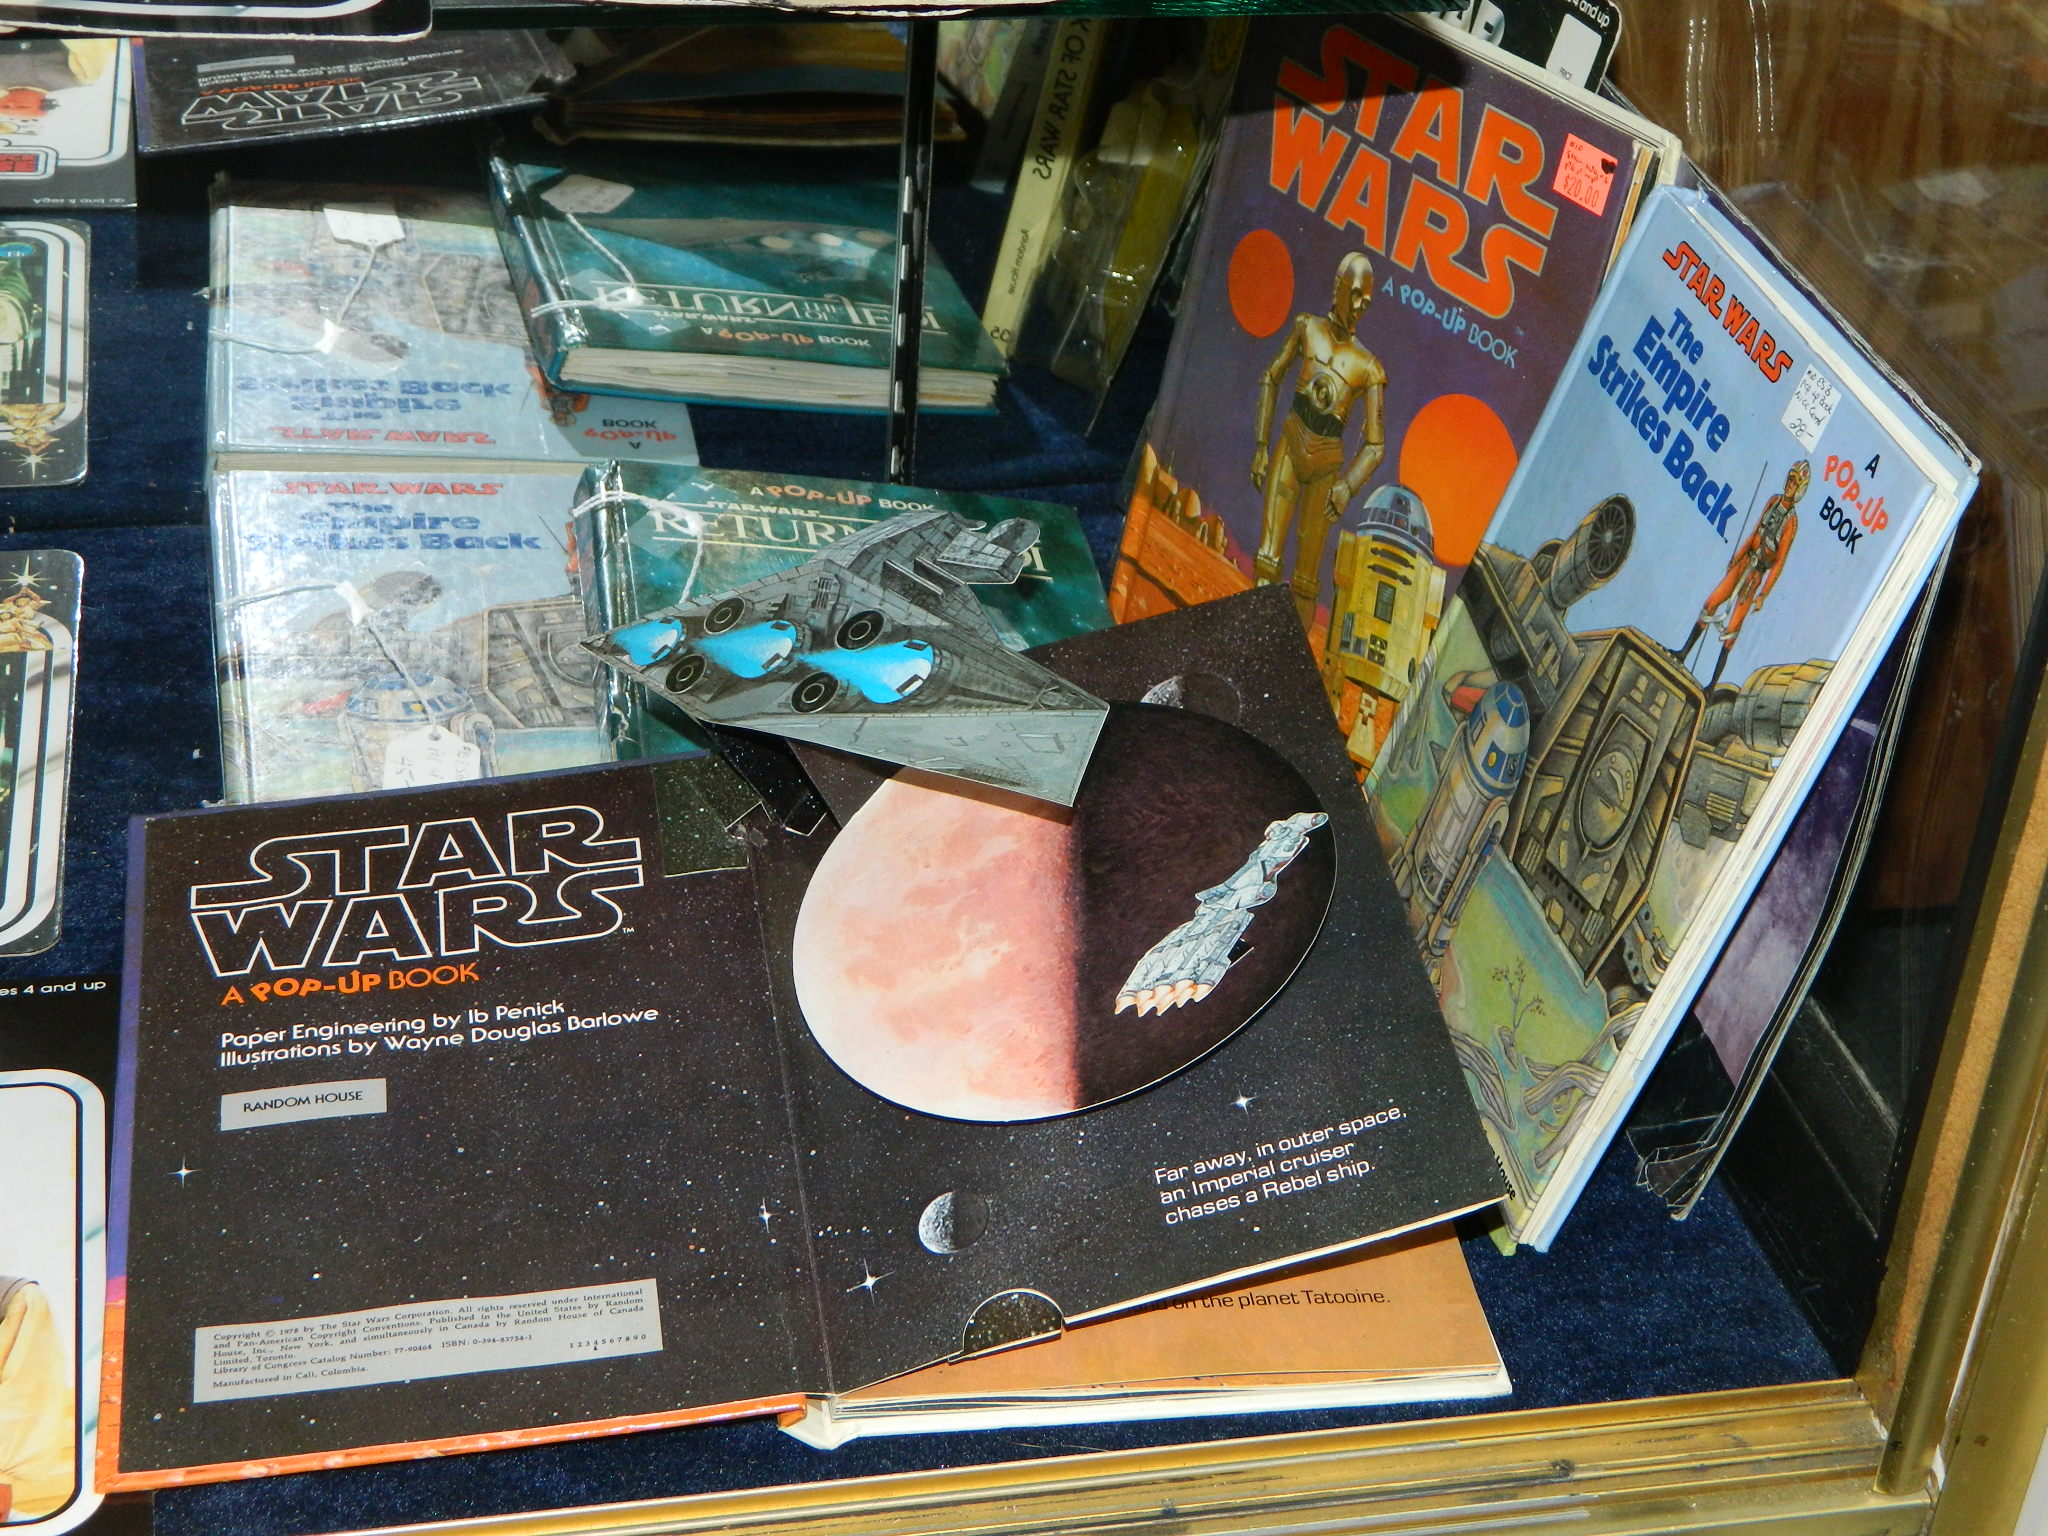 Star Wars Pop Up Books